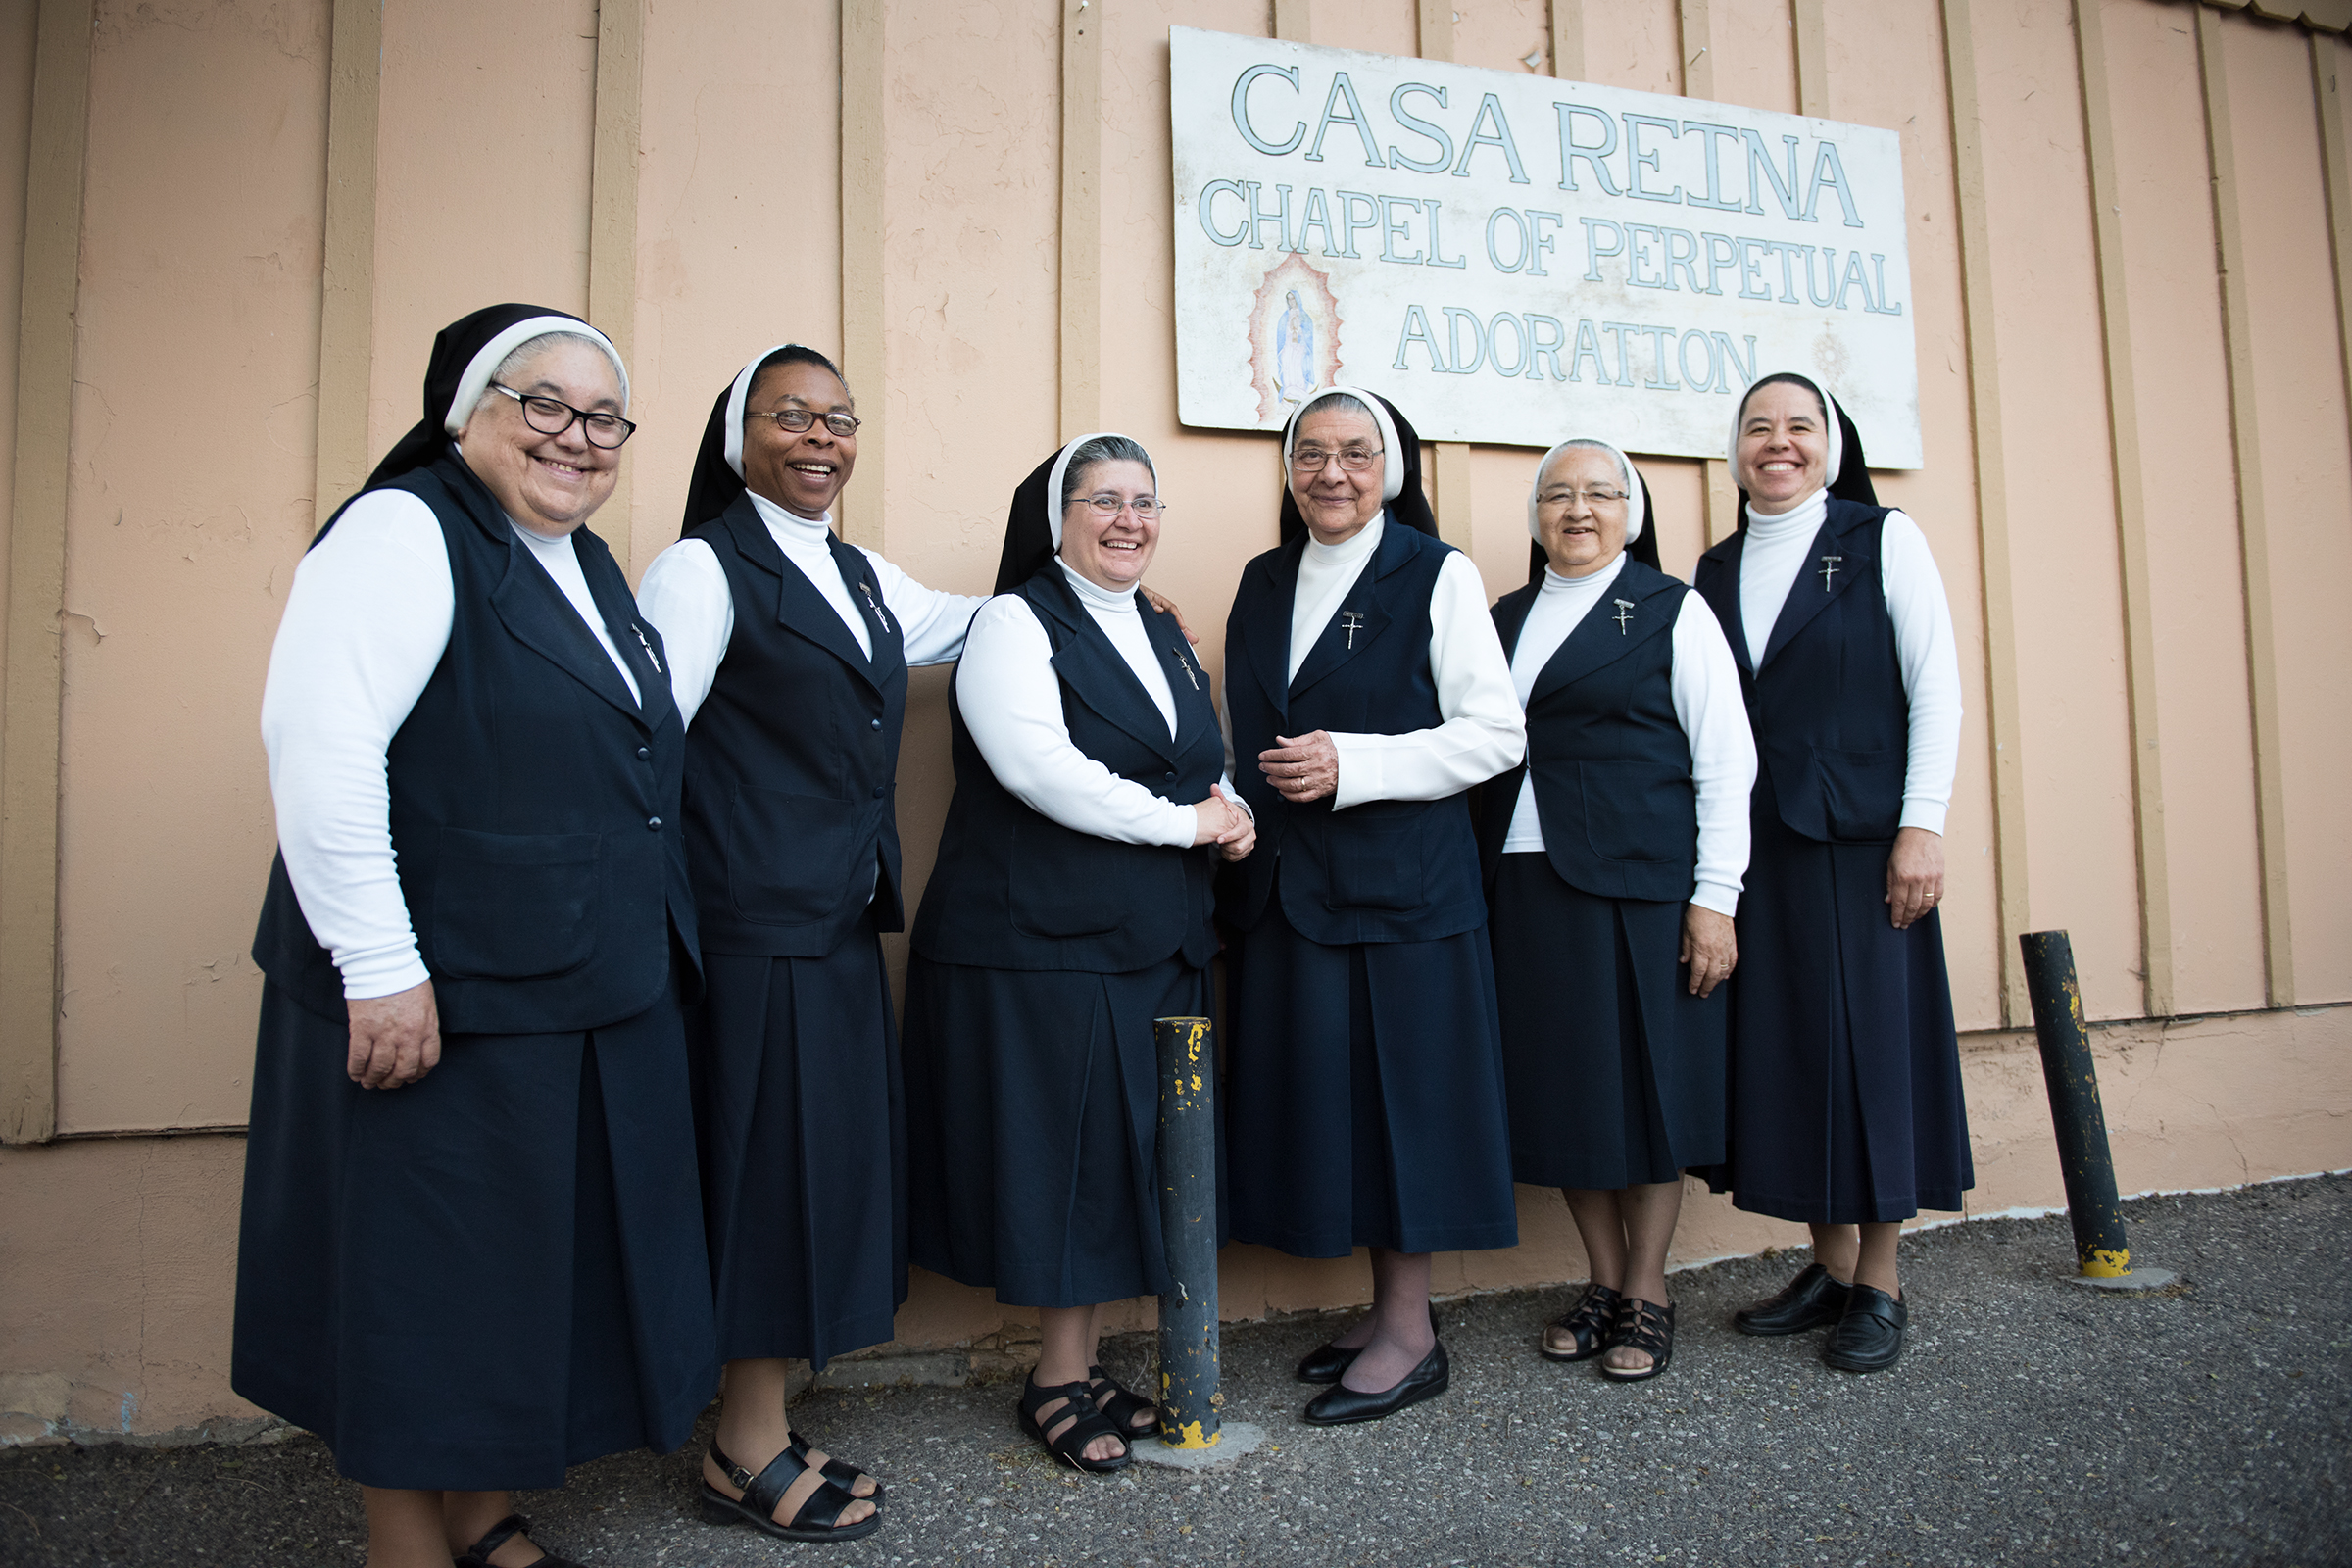 CASA REINA,SISTERS OF OUR LADY OF GUADALUPE AND ST JOSEPH